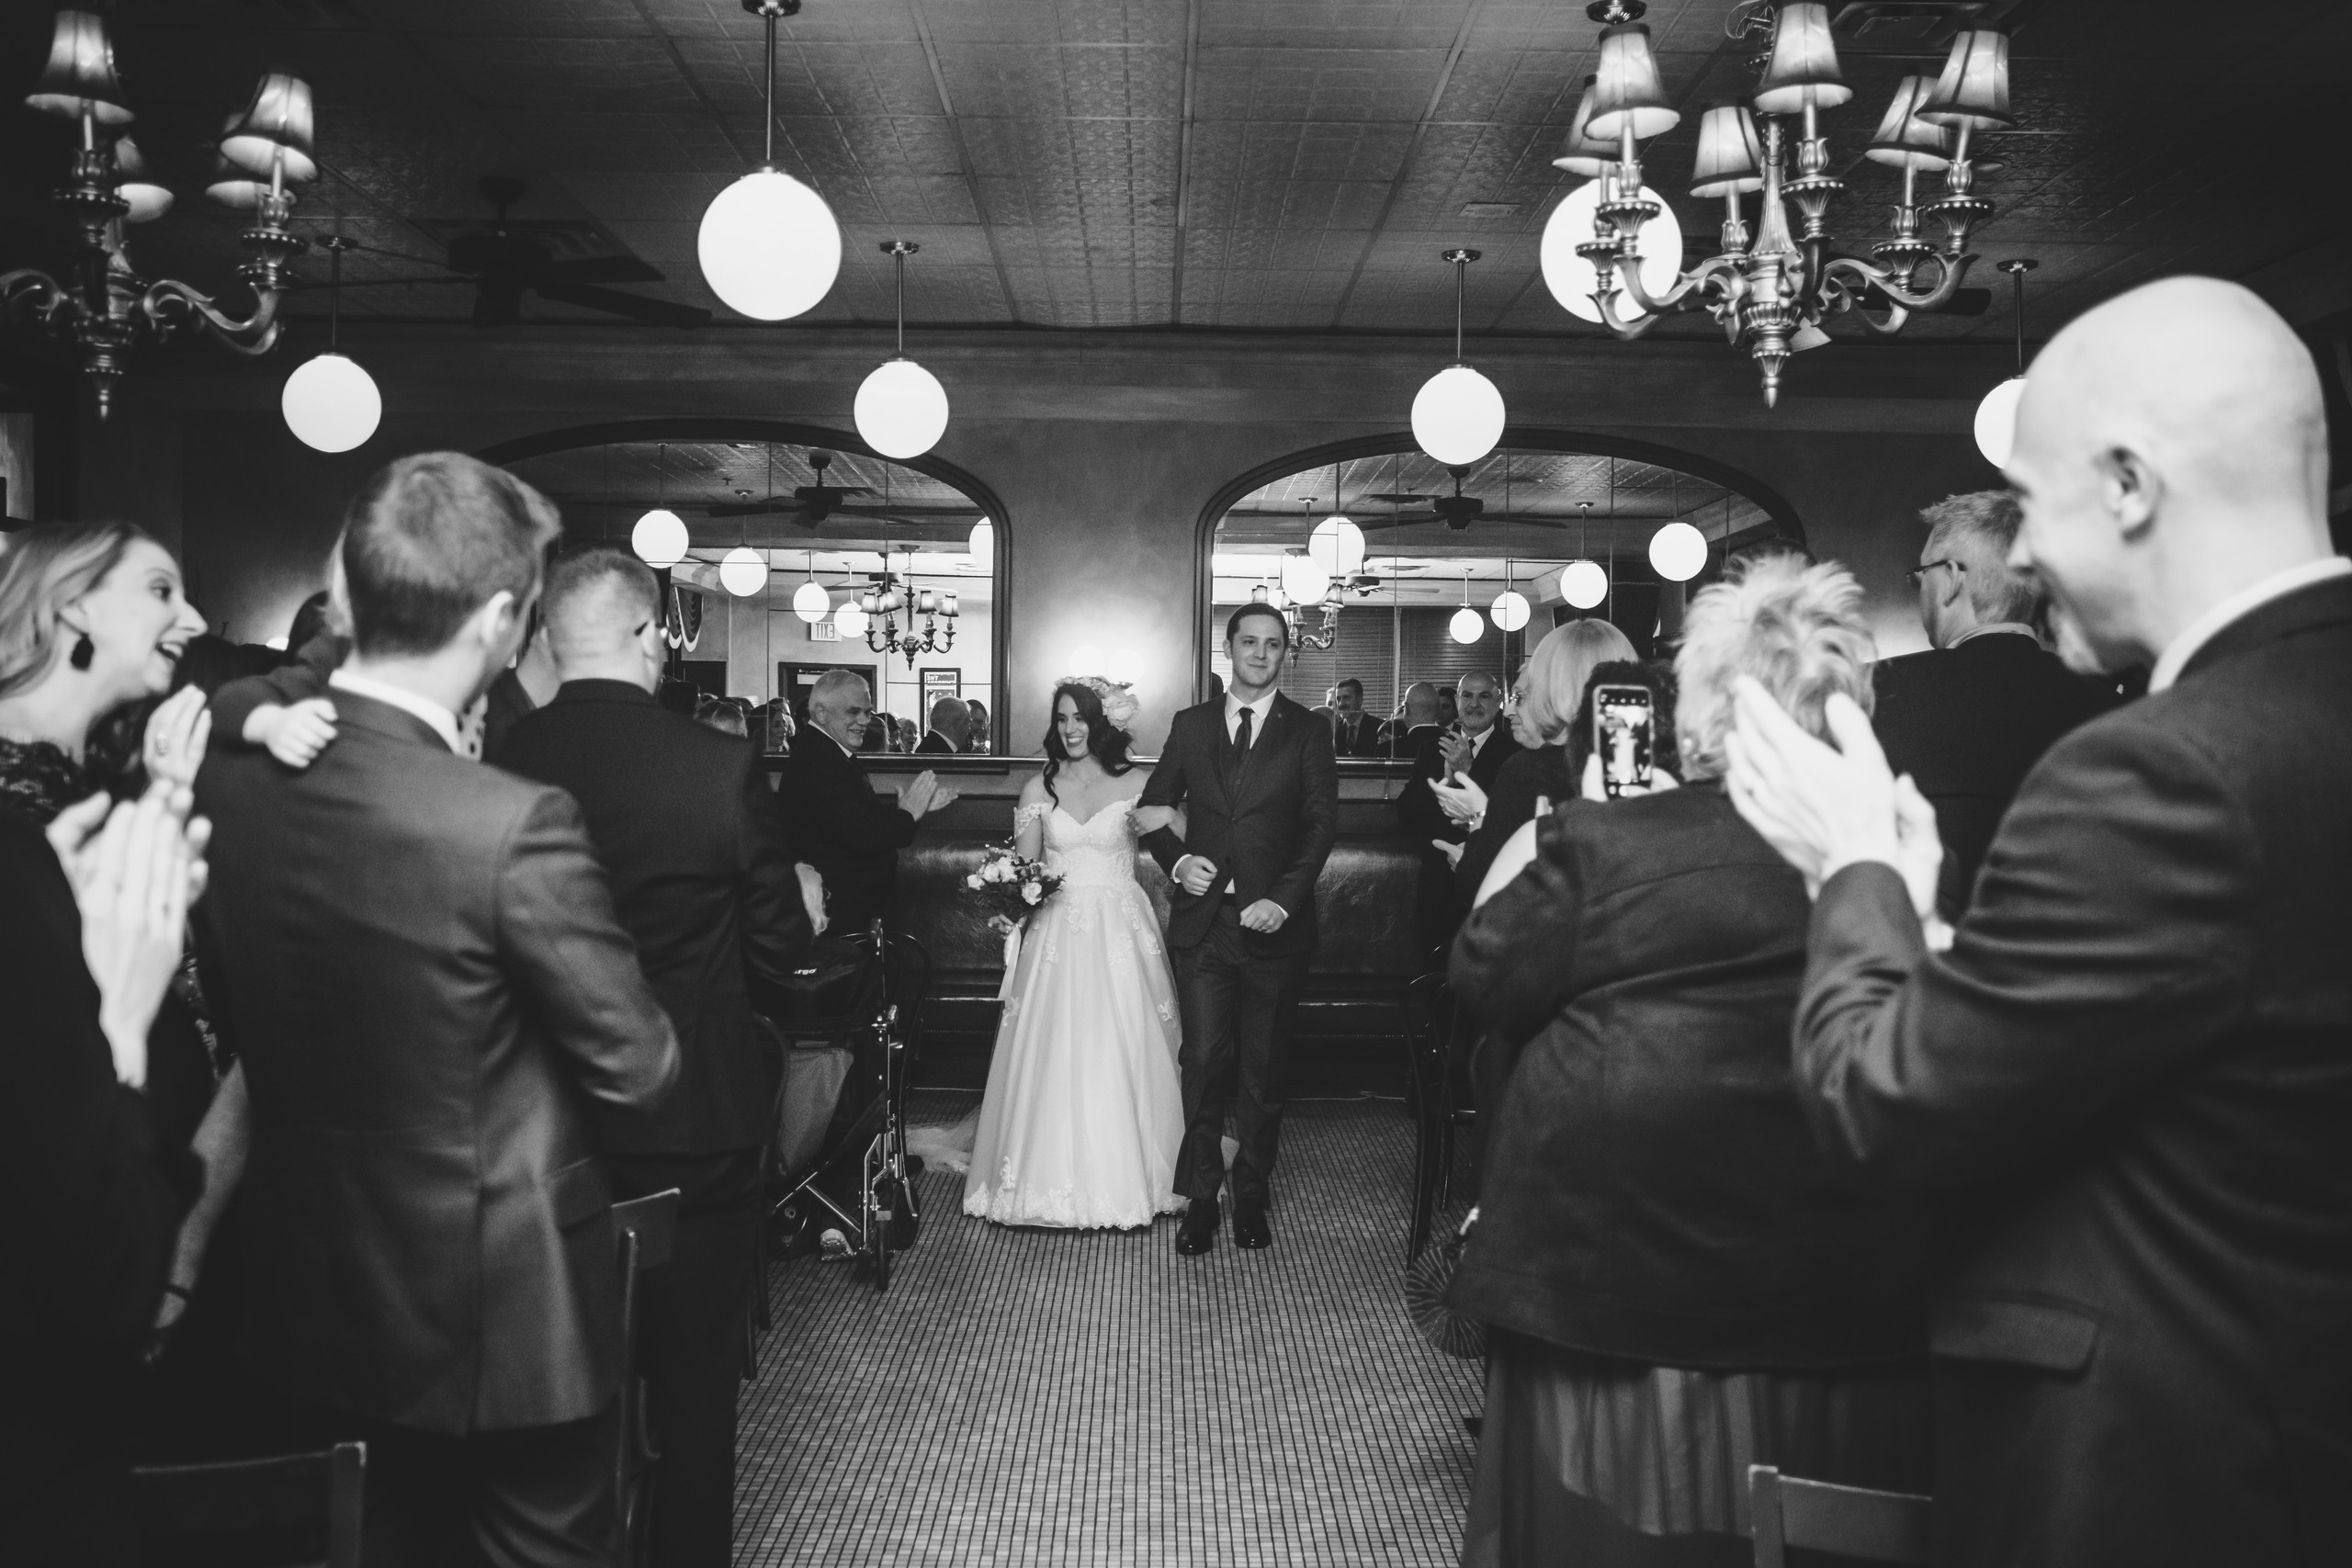 Bride and Groom walking down the aisle as a married couple following their wedding at the Metropolitain Brasserie. Photo by Melanie Mathieu Photography.